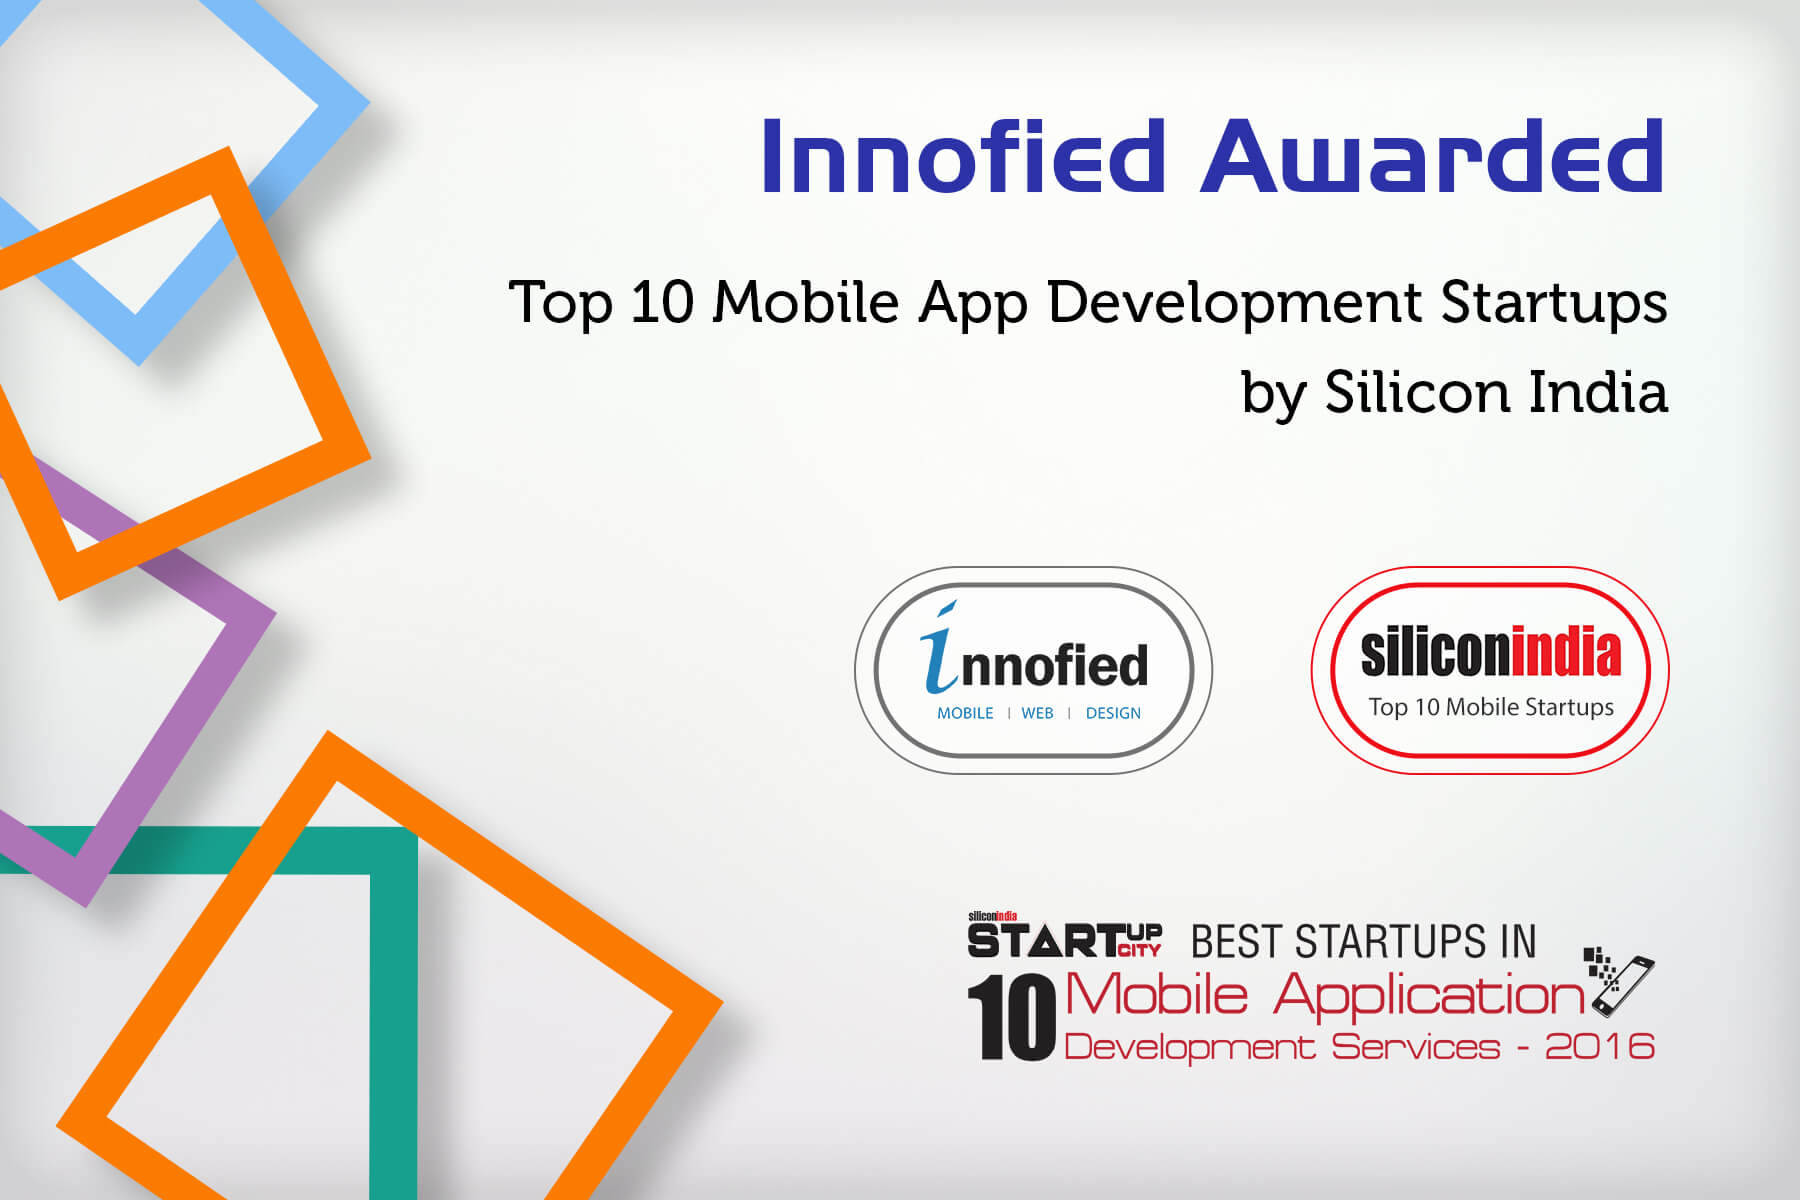 Innofied Awarded by SiliconIndia v2.0